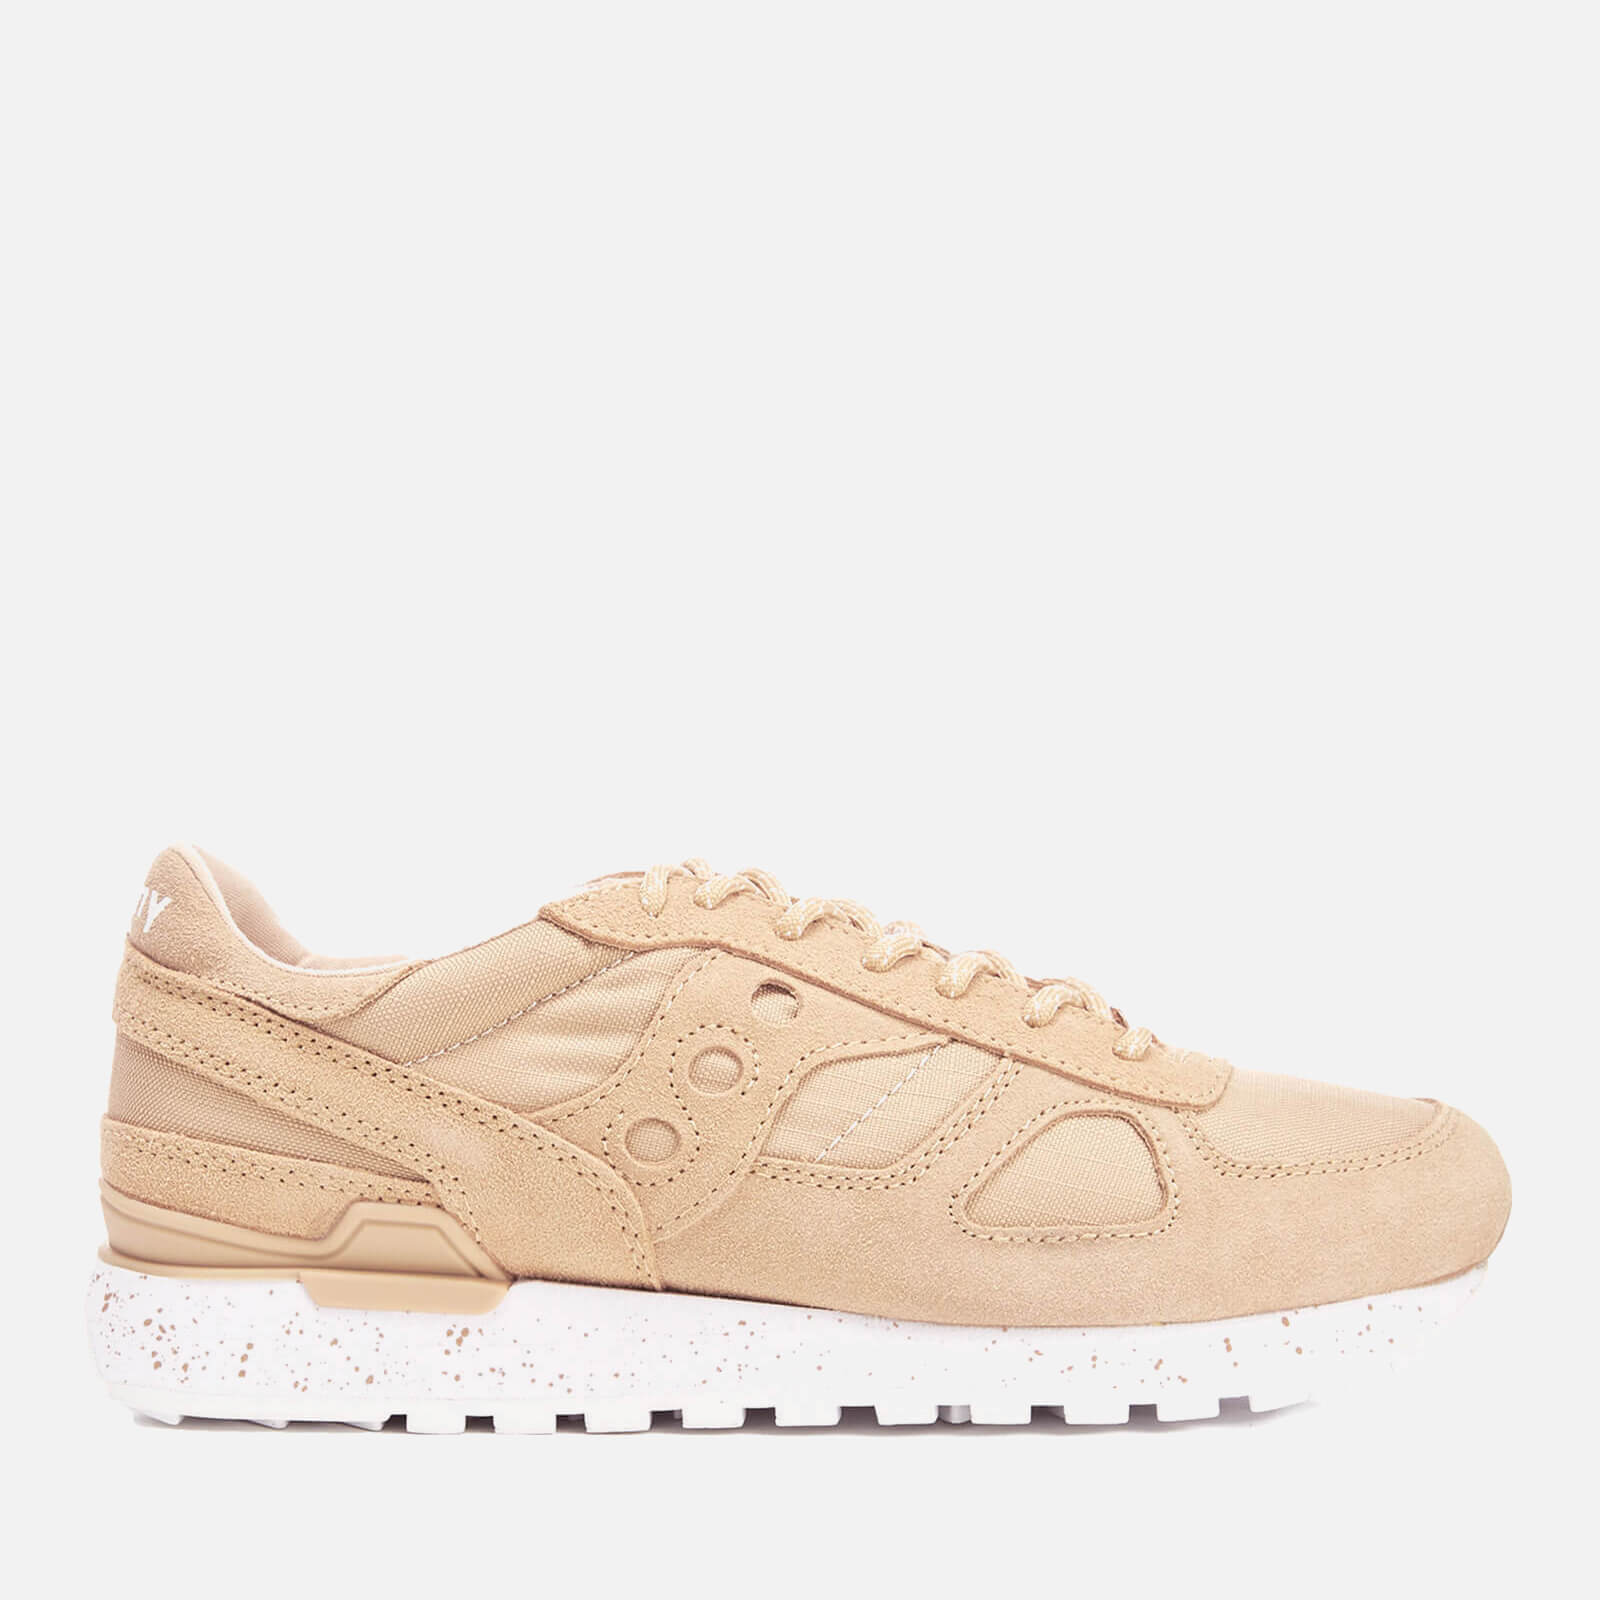 differently b6c5b 0914c Saucony Men's Shadow Original Ripstop Trainers - Light Tan